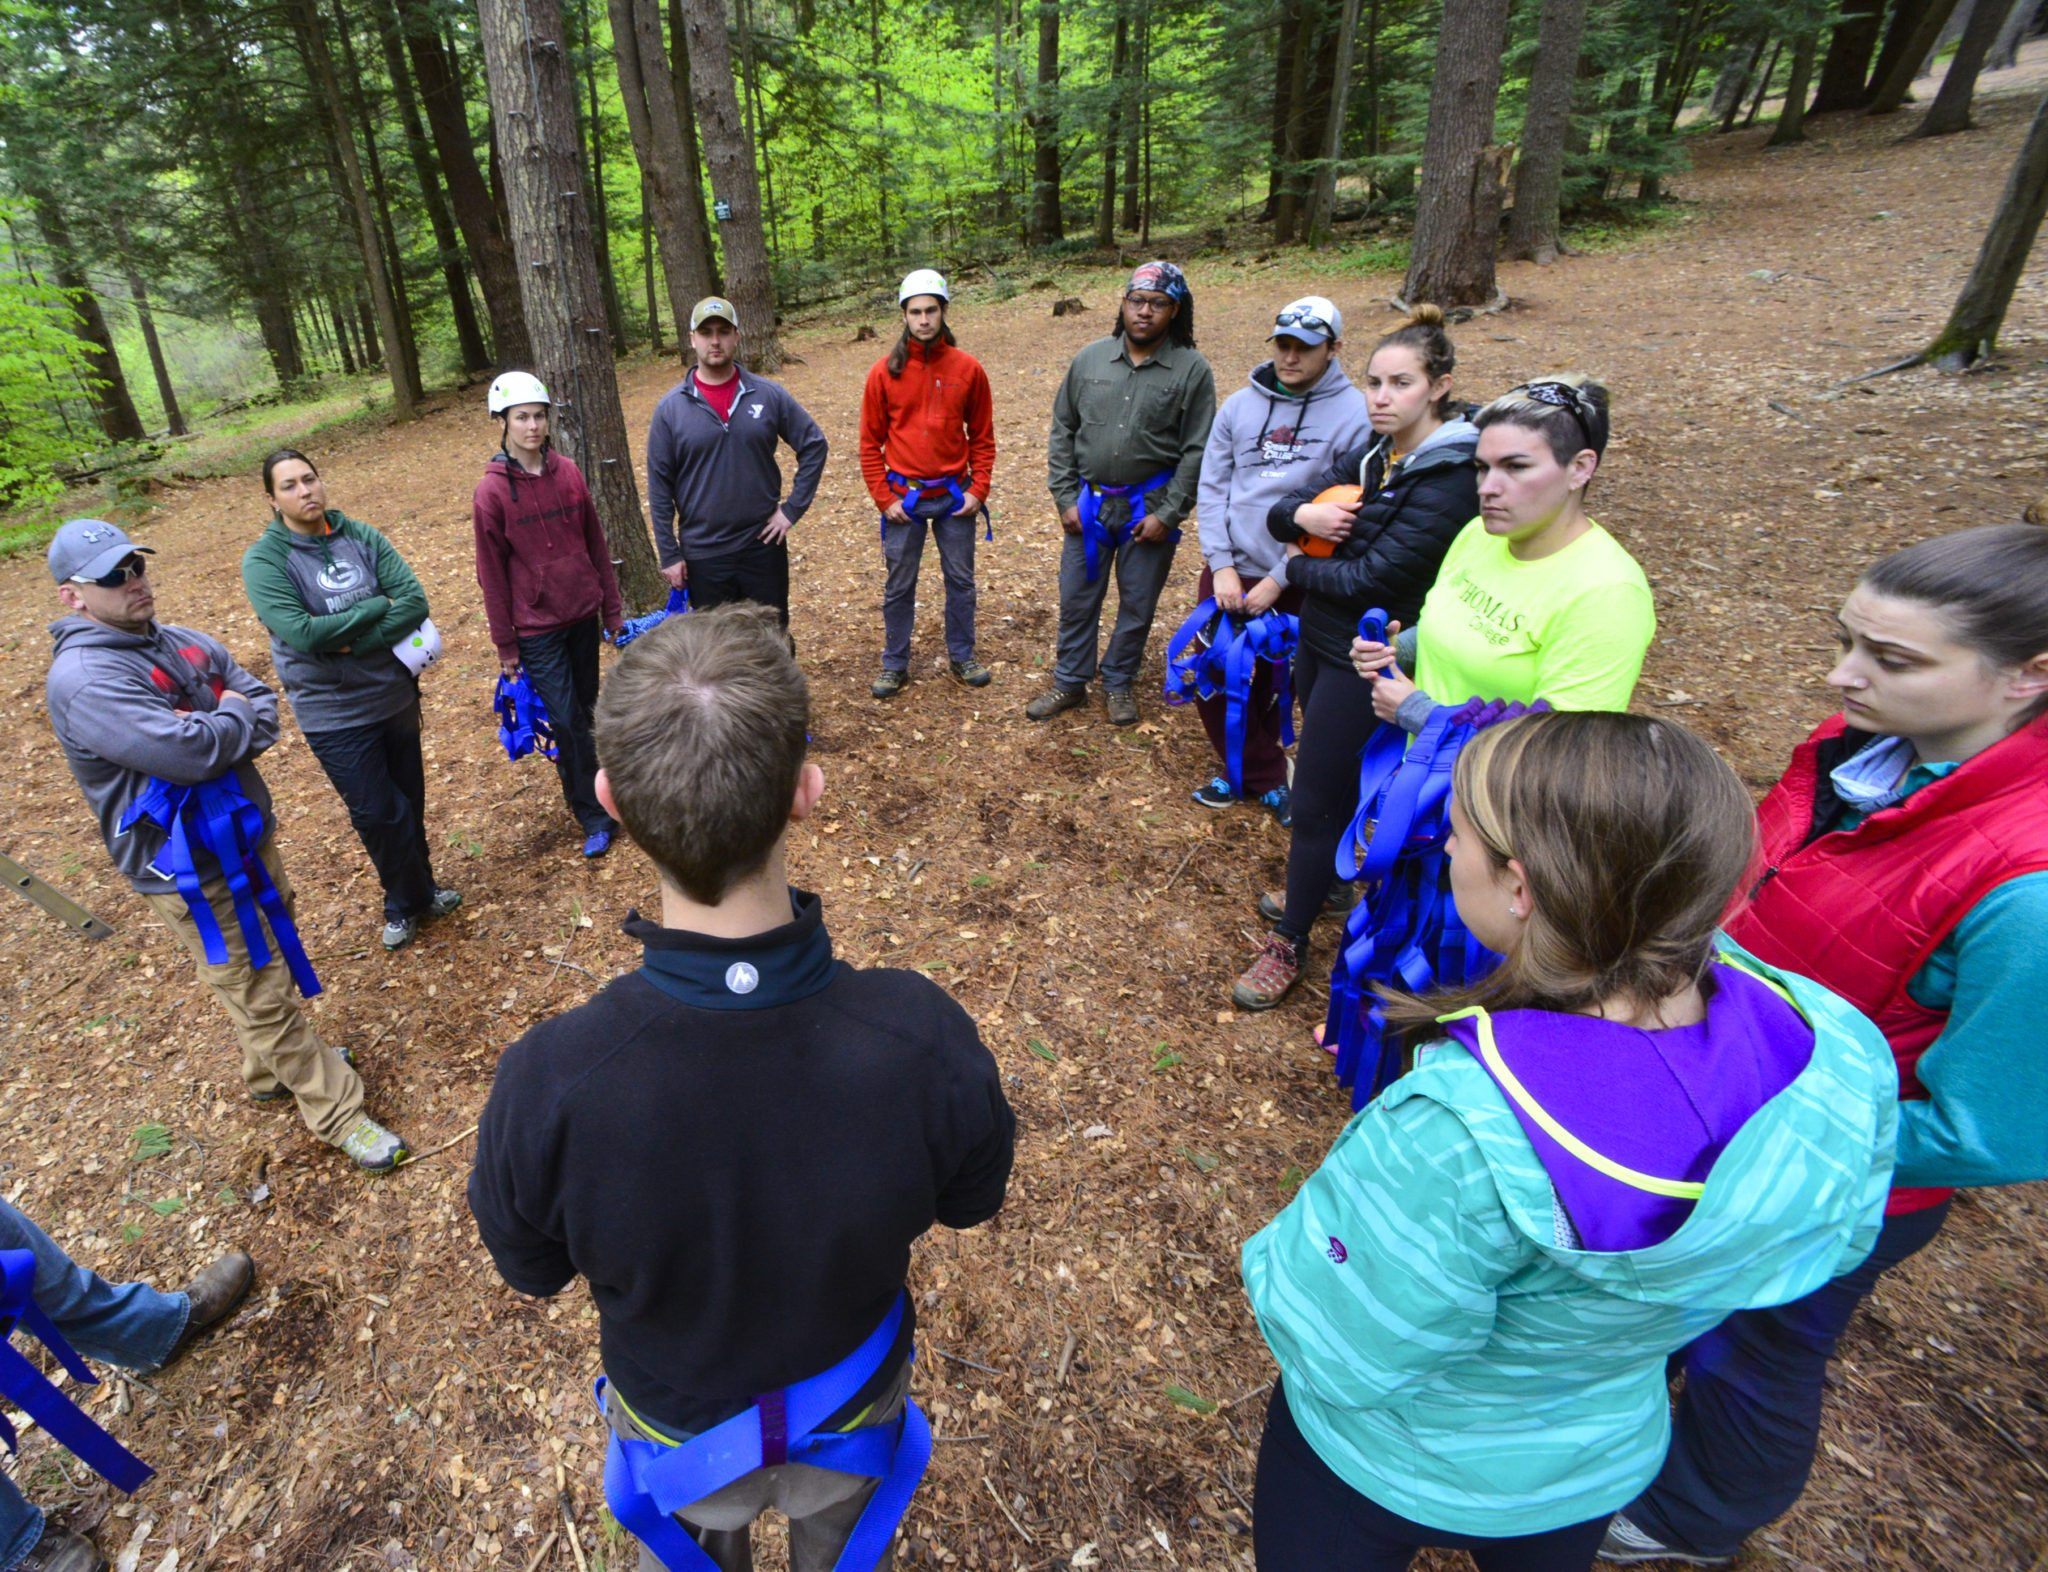 High5-May7th134 – High 5 Adventure Learning Center